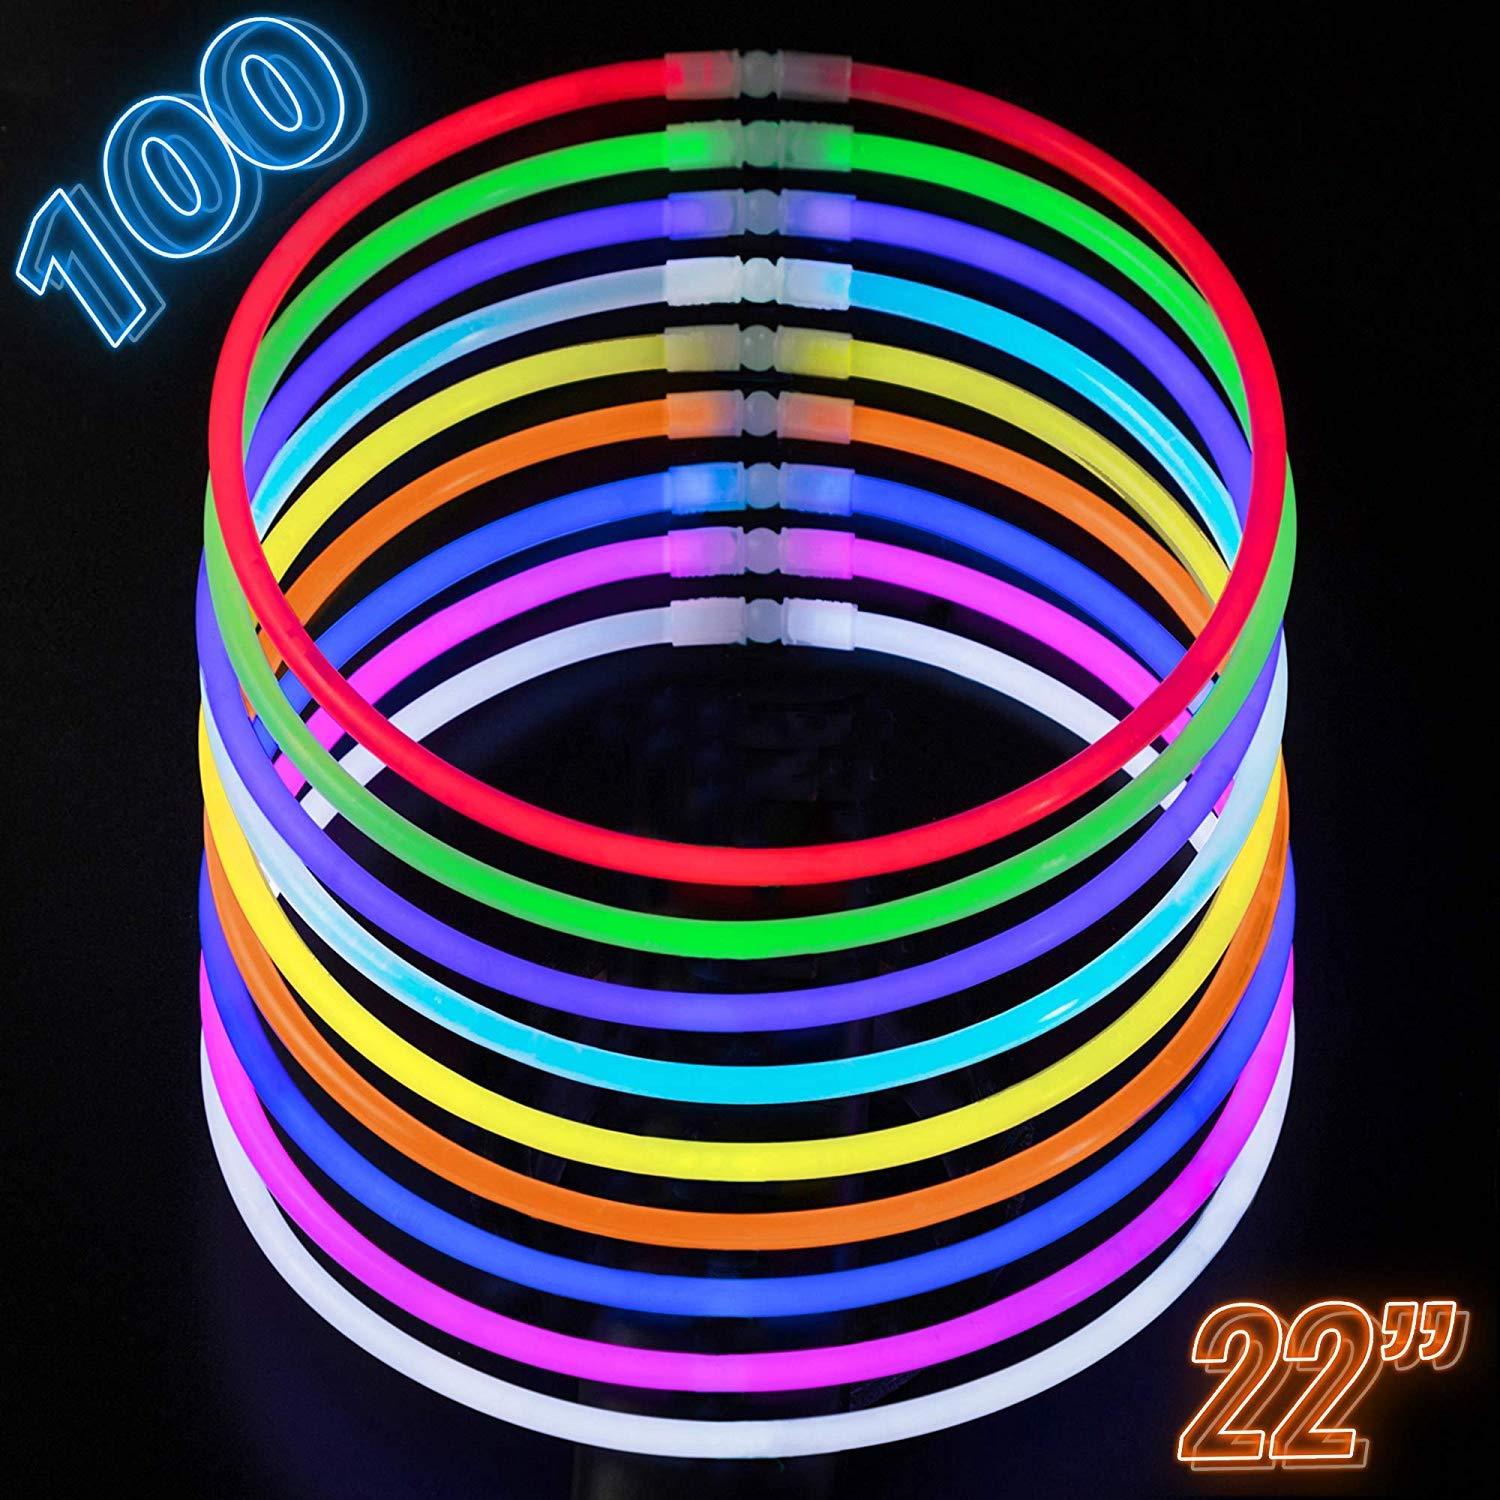 Glow Necklaces Bulk Party Supplies - 100 Glow in the Dark Necklaces - 22 Inch Glow Sticks - Extra Bright Neon Glow Necklace - Strong 6mm Thick - 9 Vibrant Neon Colors - Stuffers for Kids - Mix by CoBeeGlow (Image #1)